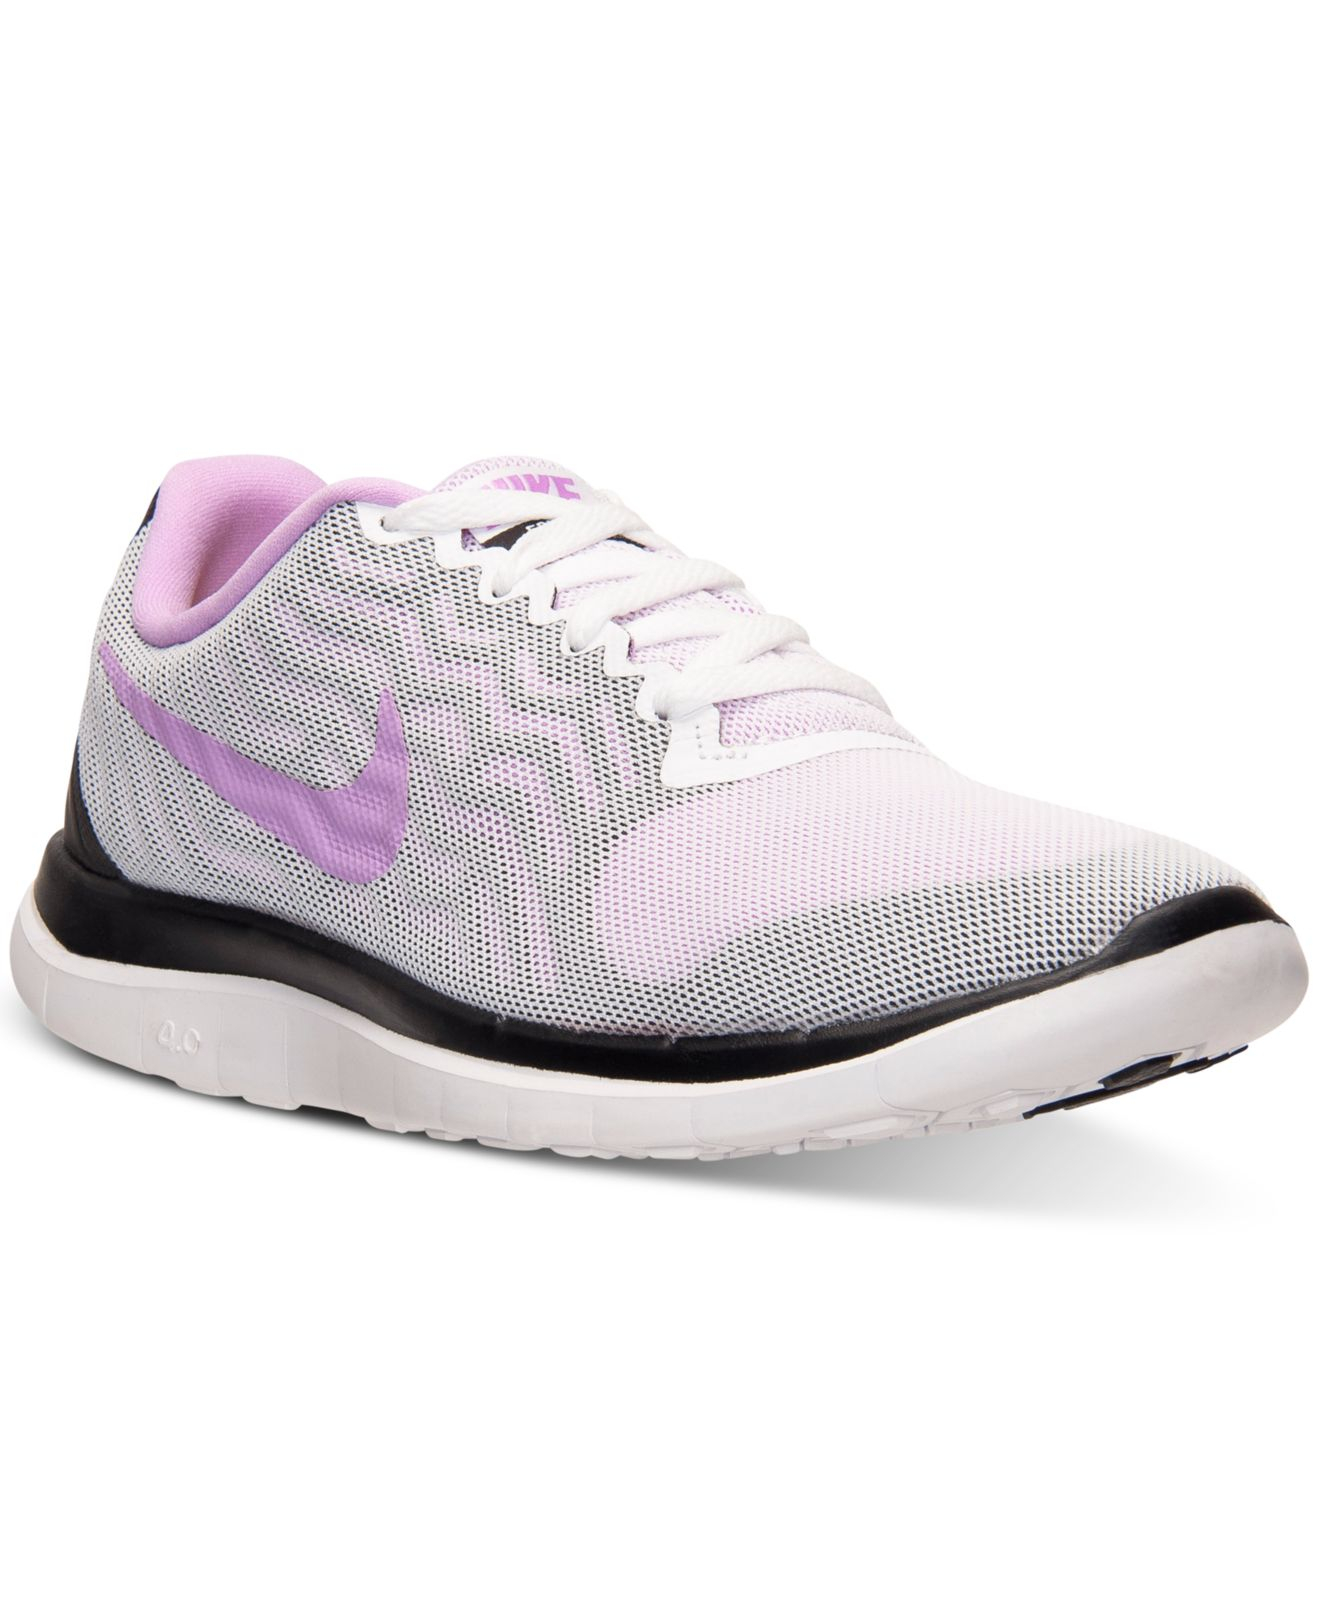 best cheap 7cb2d 6e45f Lyst - Nike Women s Free 4.0 V5 Running Sneakers From Finish Line in ...